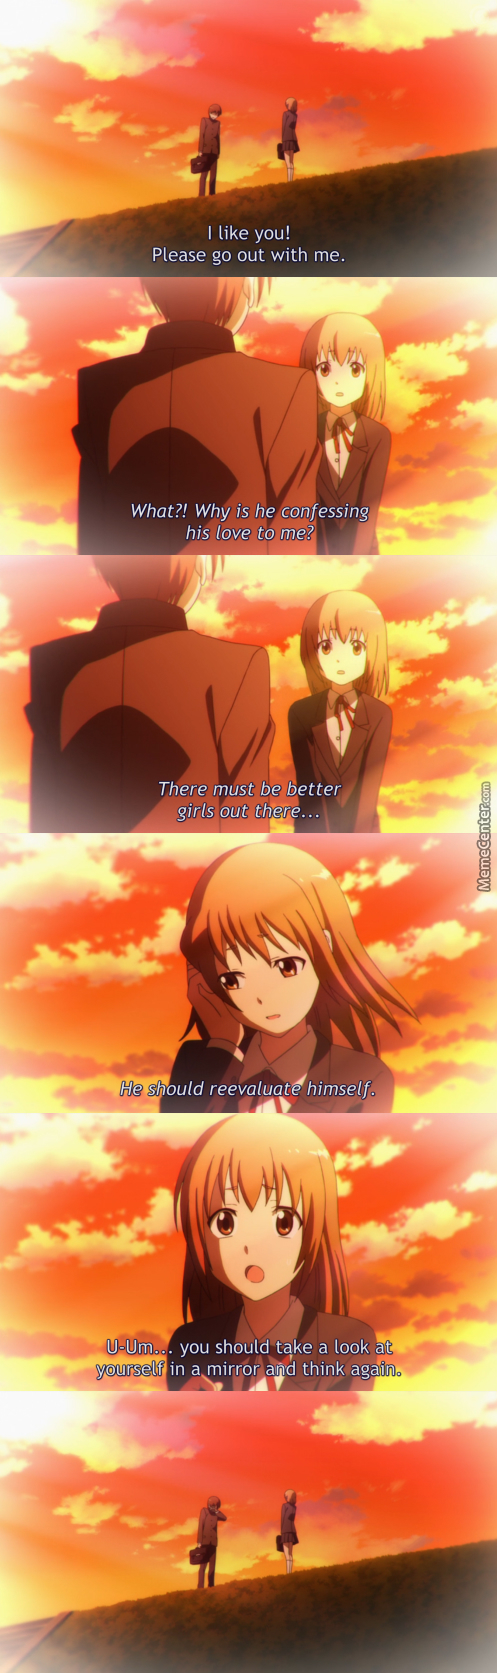 Rejected Lvl: Involuntary Burn. (Anime: Servant X Service )